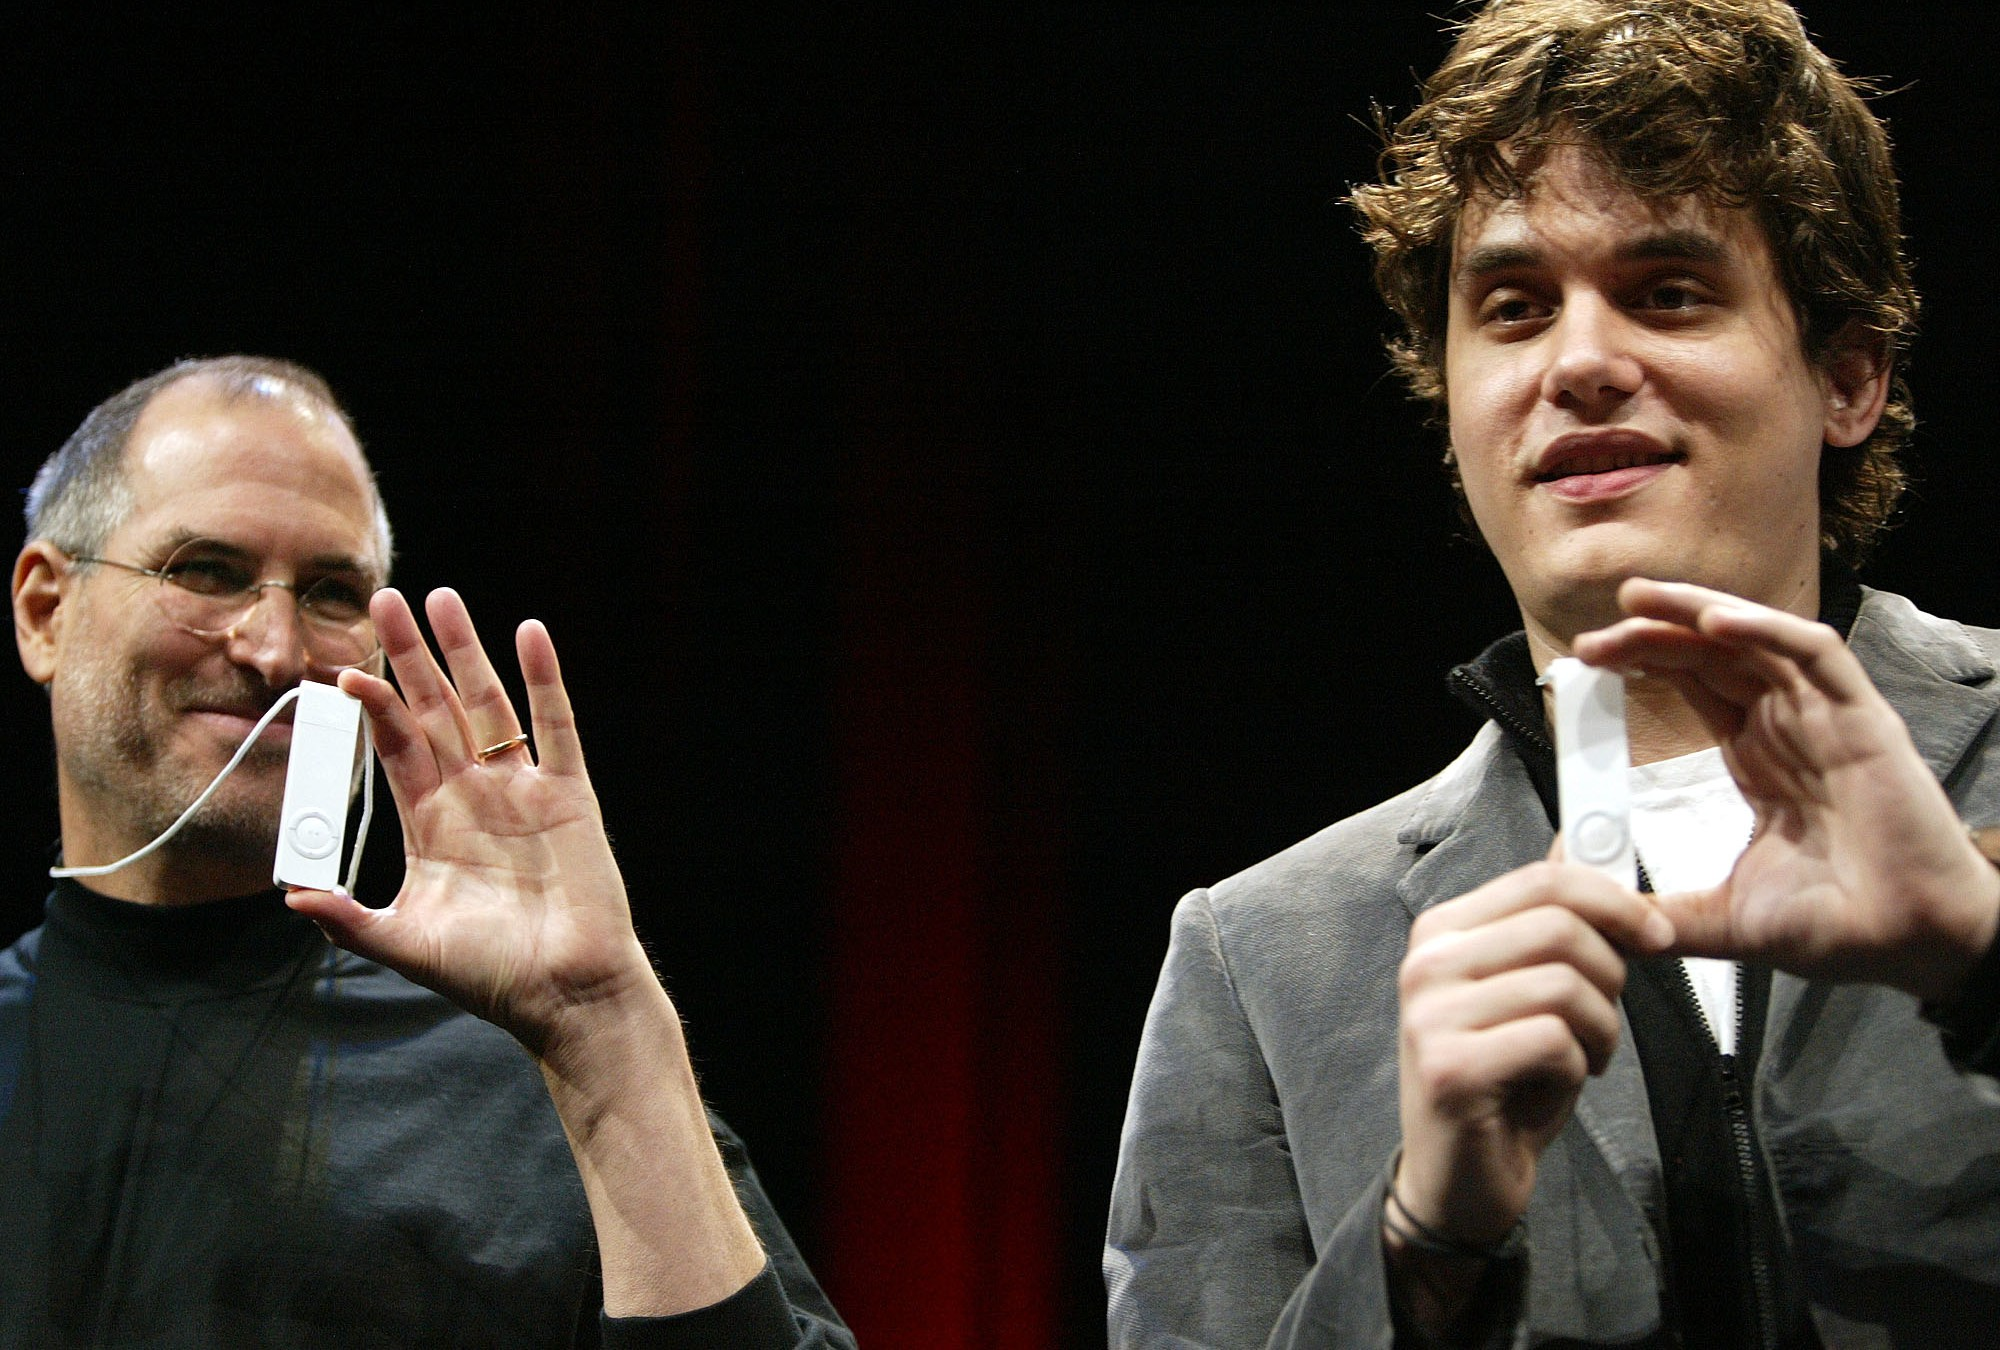 Apple Computer Inc. CEO Steve Jobs, left, and musician John Mayer unveil the new iPod Shuffle after Jobs gave the keynote address and Mayer performed during the Macworld Conference and Expo at the Moscone Center Esplanade in San Francisco on Tuesday, Jan. 11, 2005. (AP Photo/Jeff Chiu)